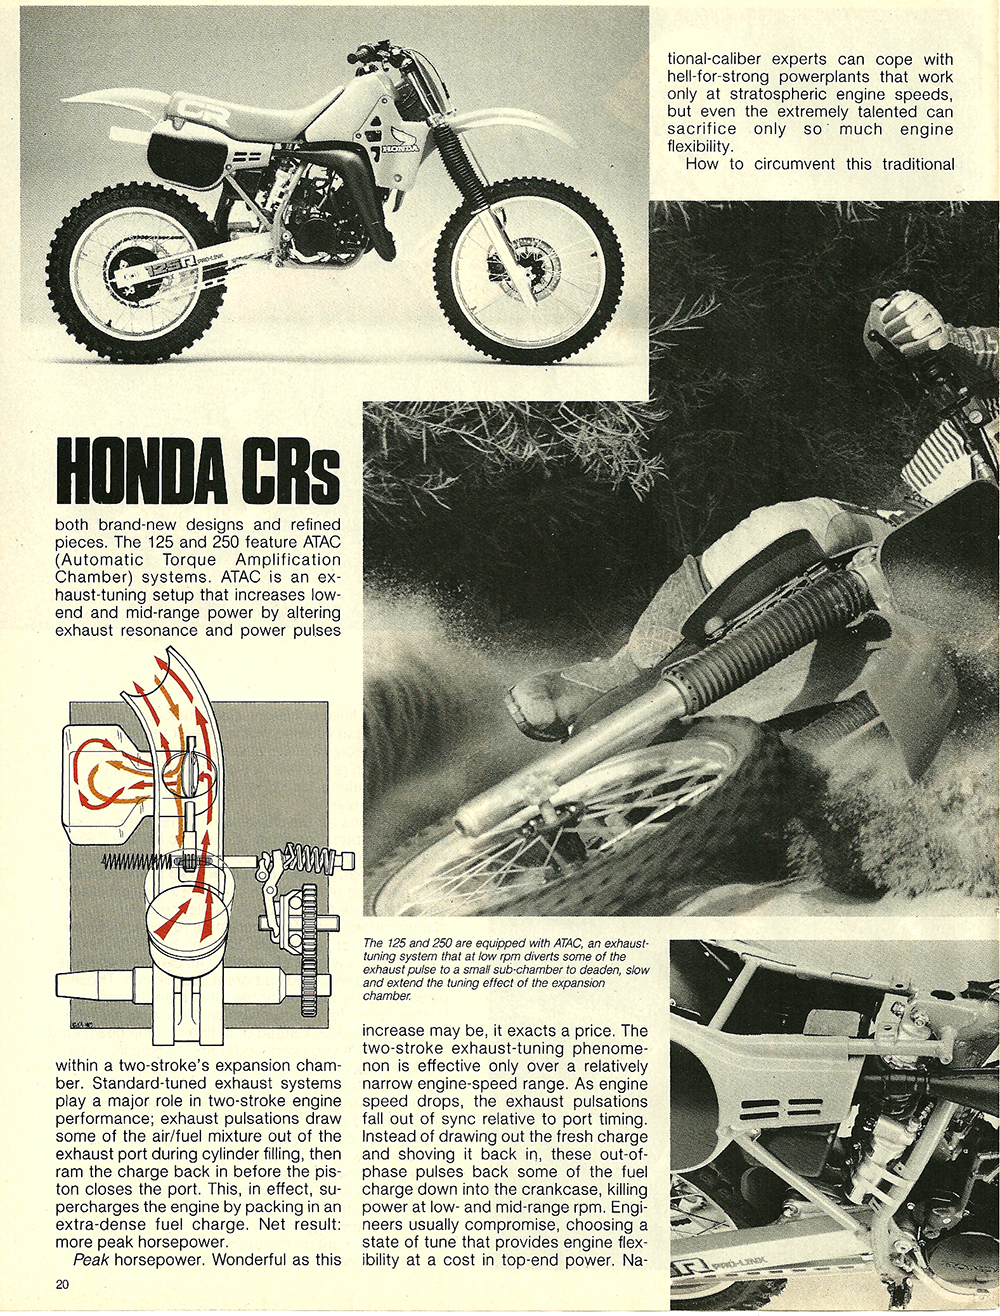 1984 Honda CR 125 250 500 road test 03.jpg